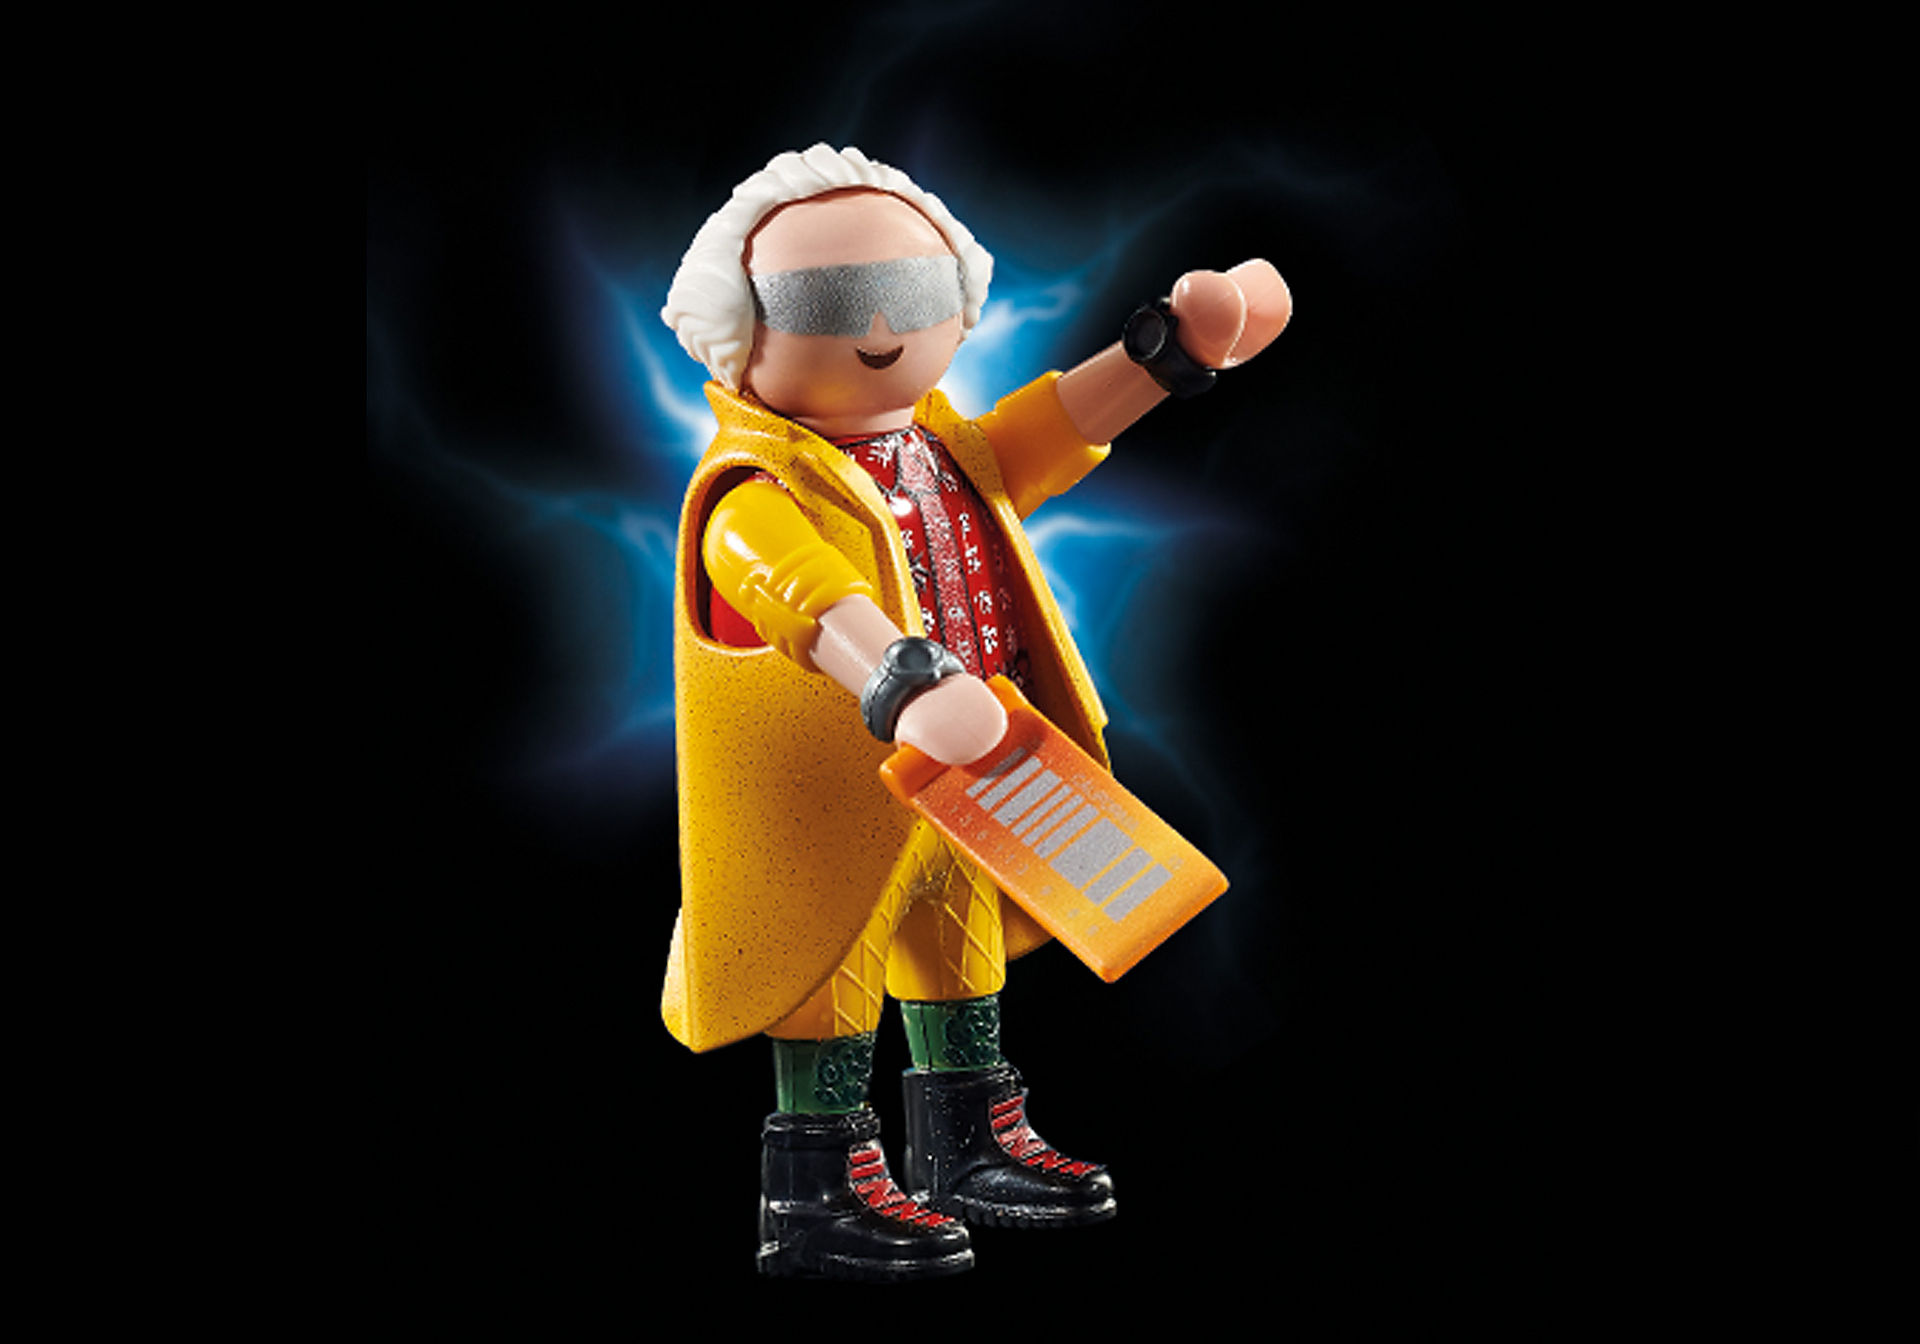 70634 Back to the Future Part II Hoverboard Chase zoom image7